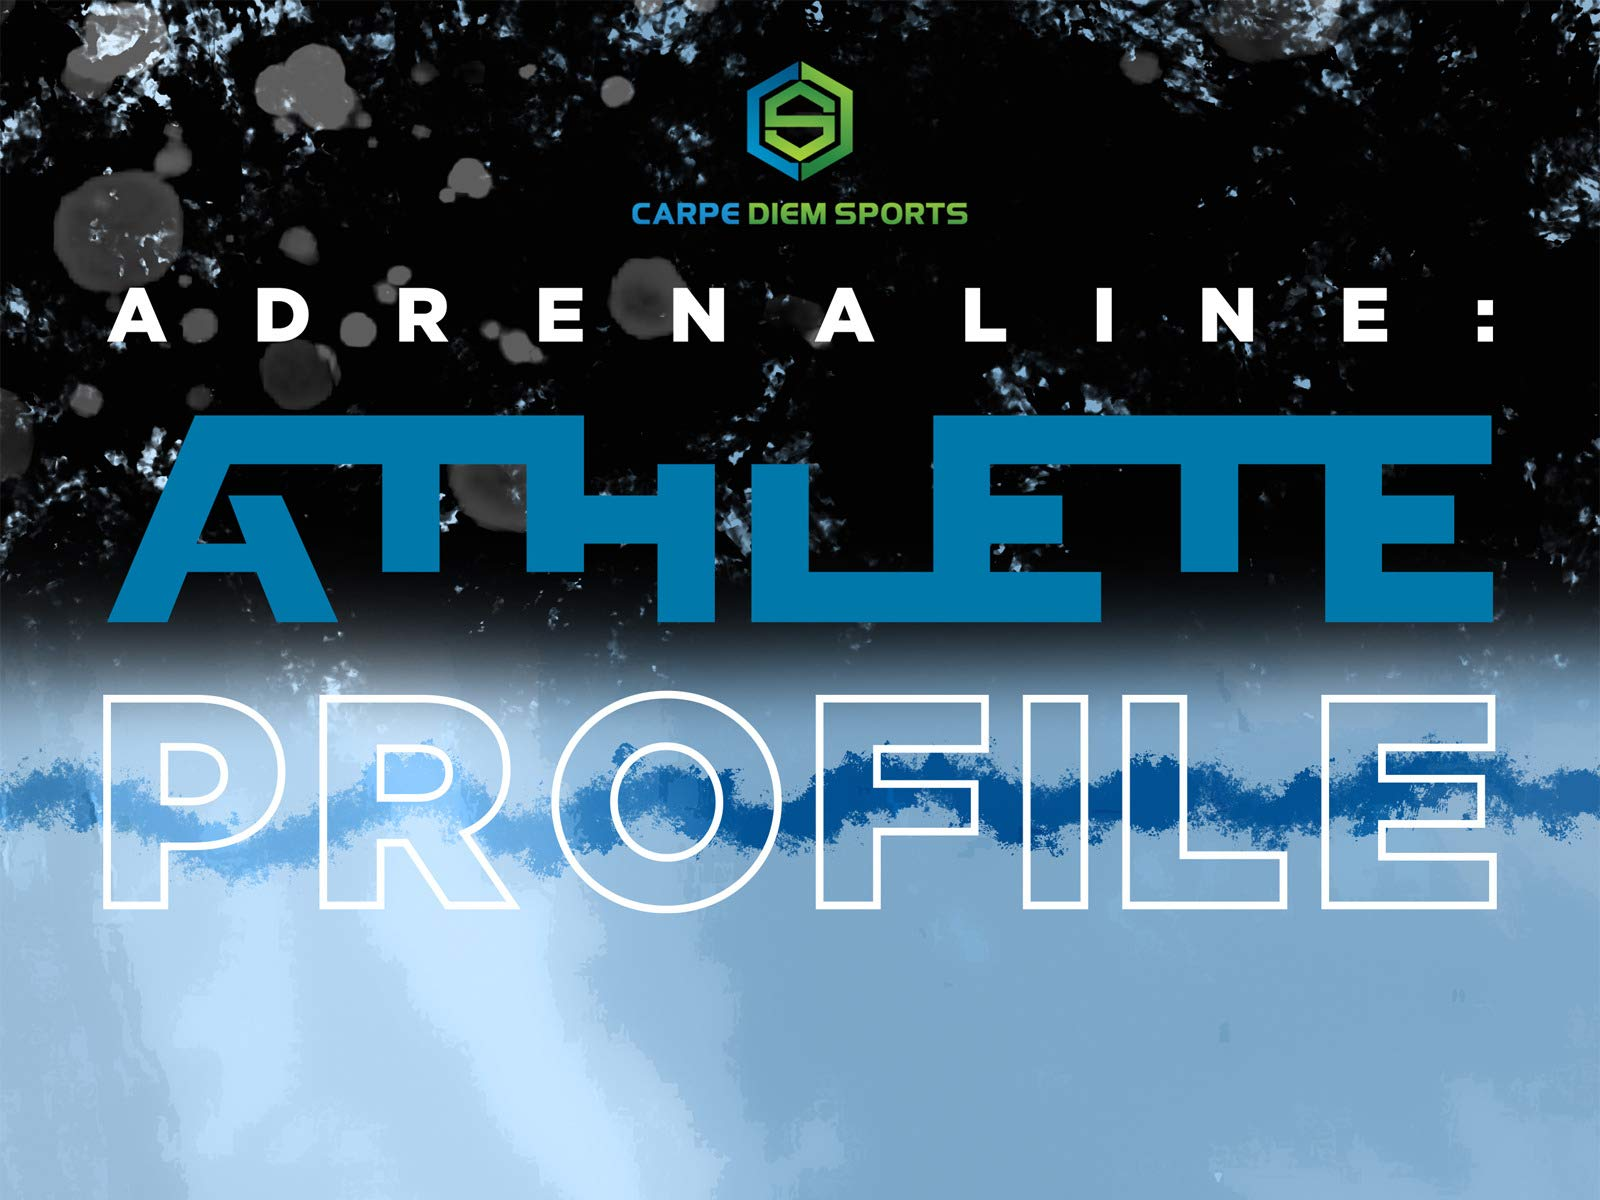 Adrenaline: Athlete Profile - Season 1